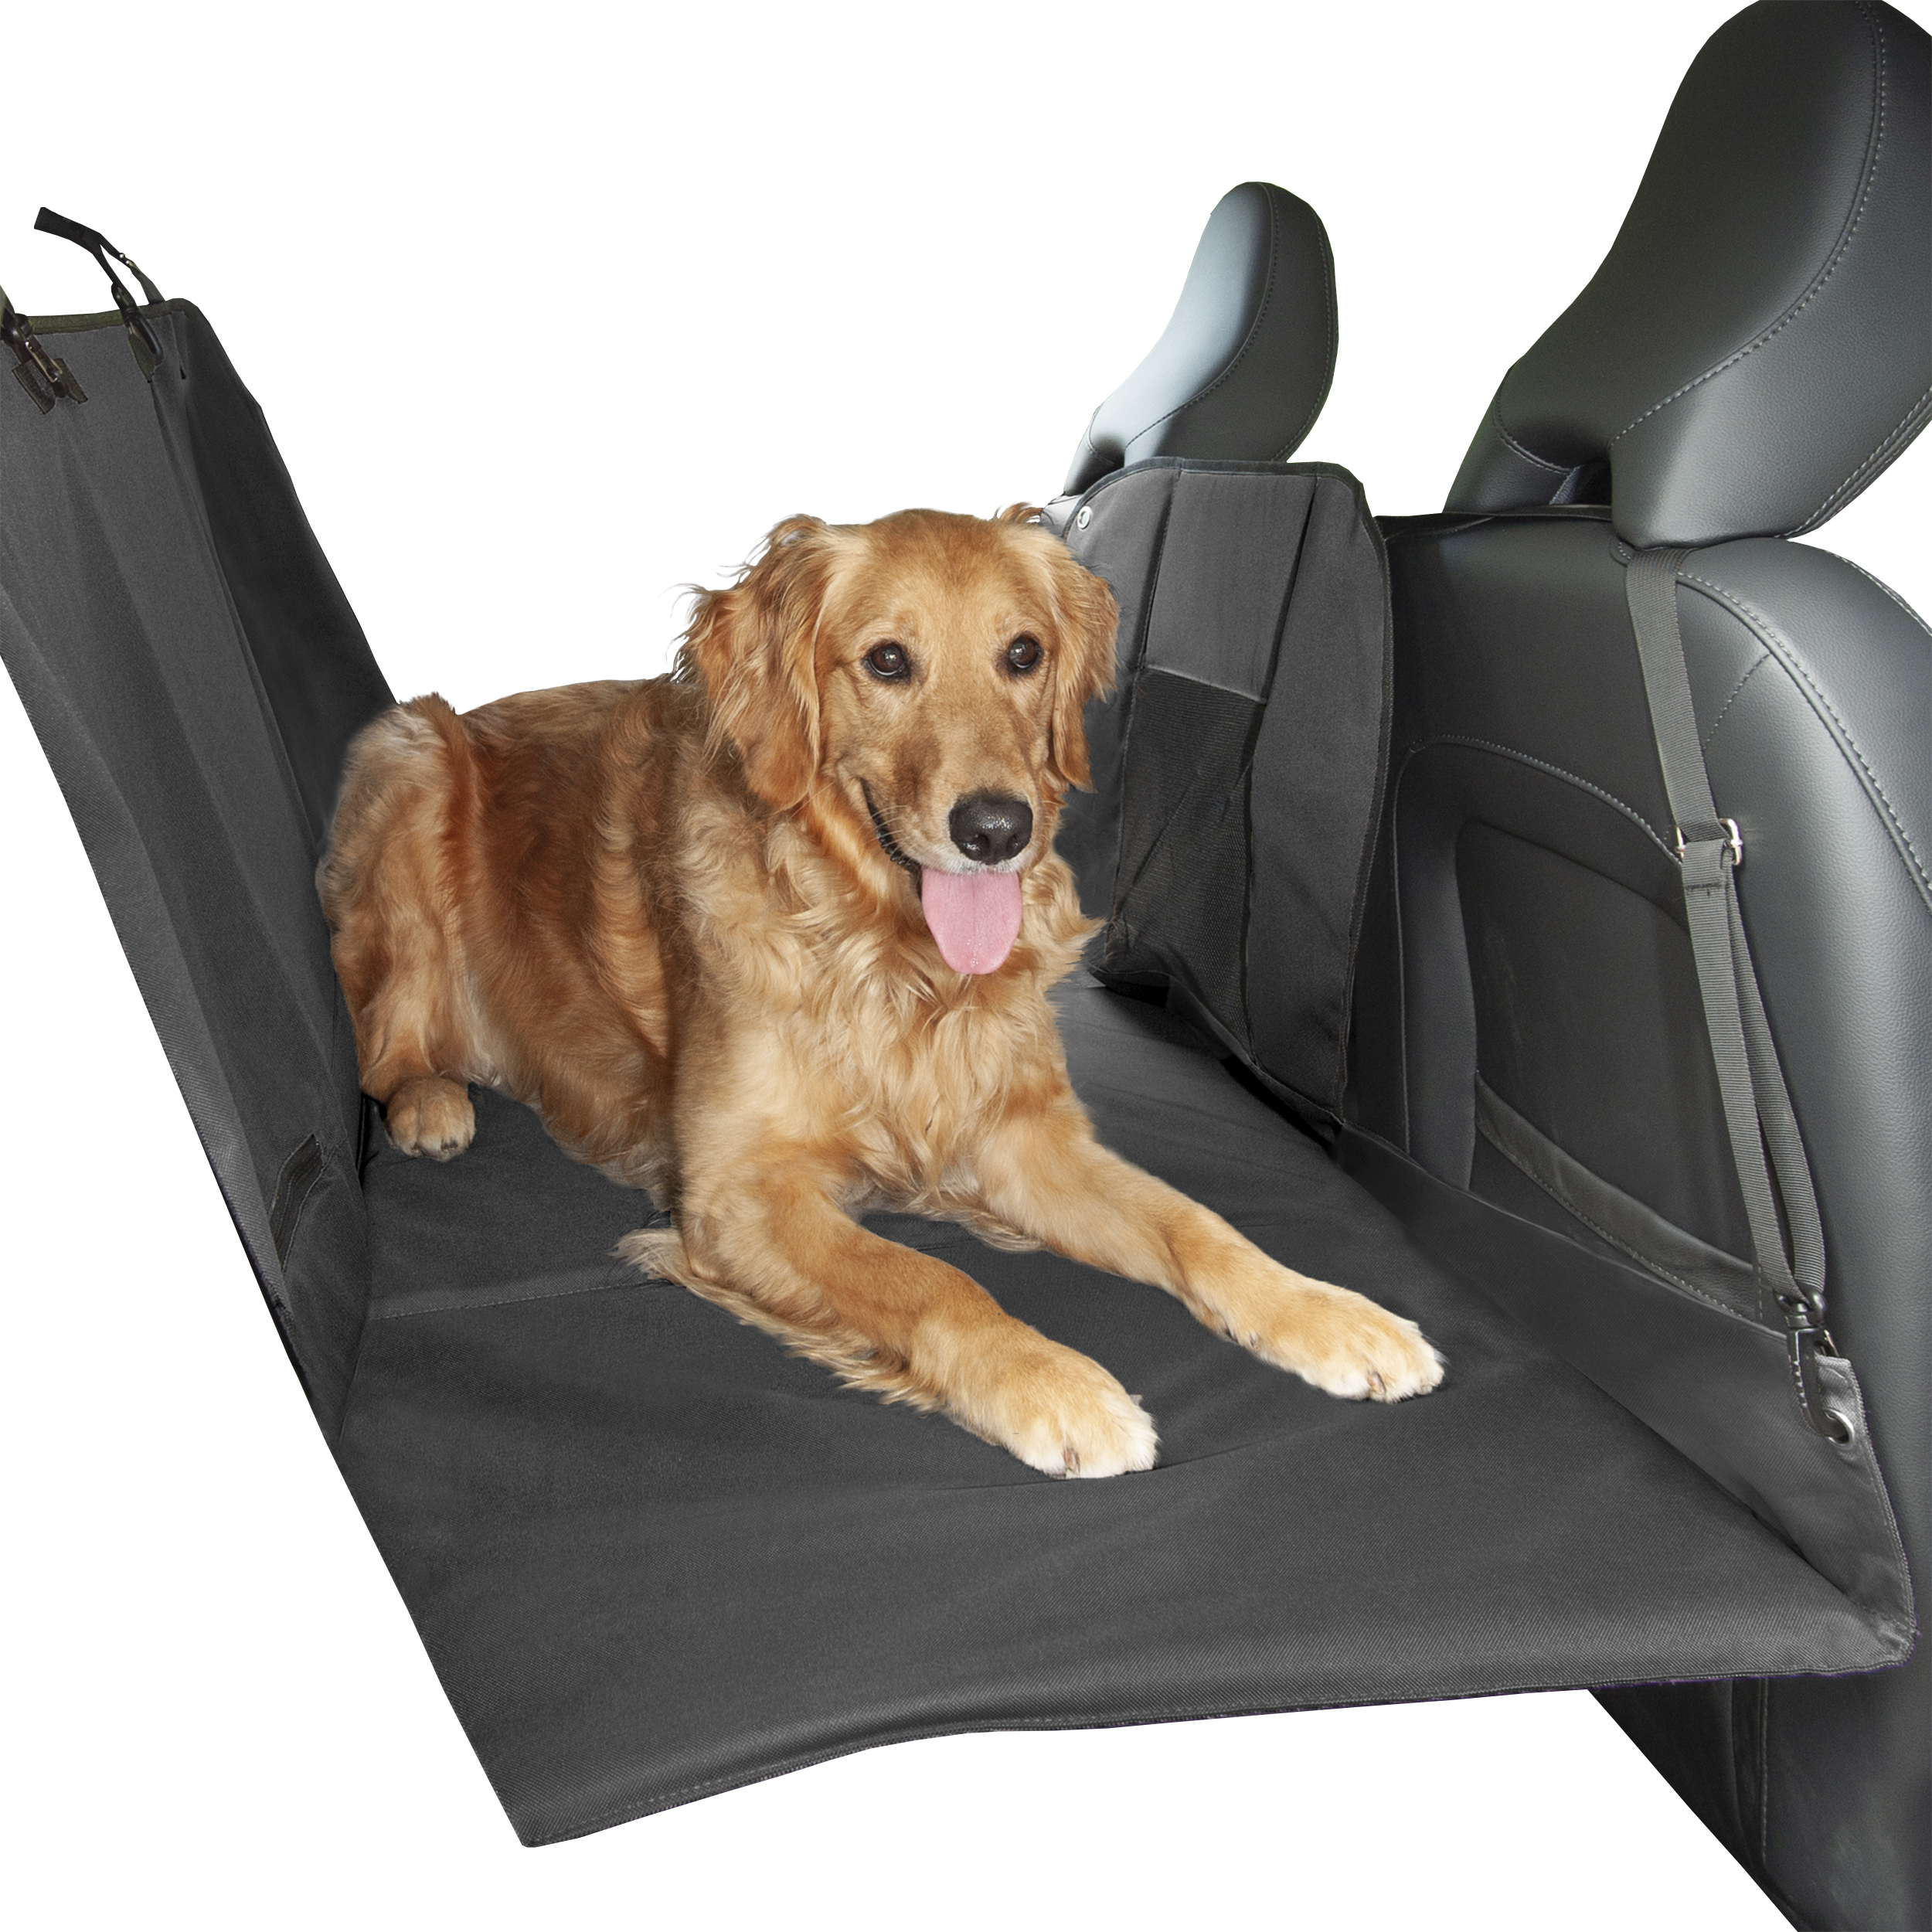 FurHaven Pet Car Seat Cover | Deluxe Hard Base Car Seat Cover, Gray, Hammock